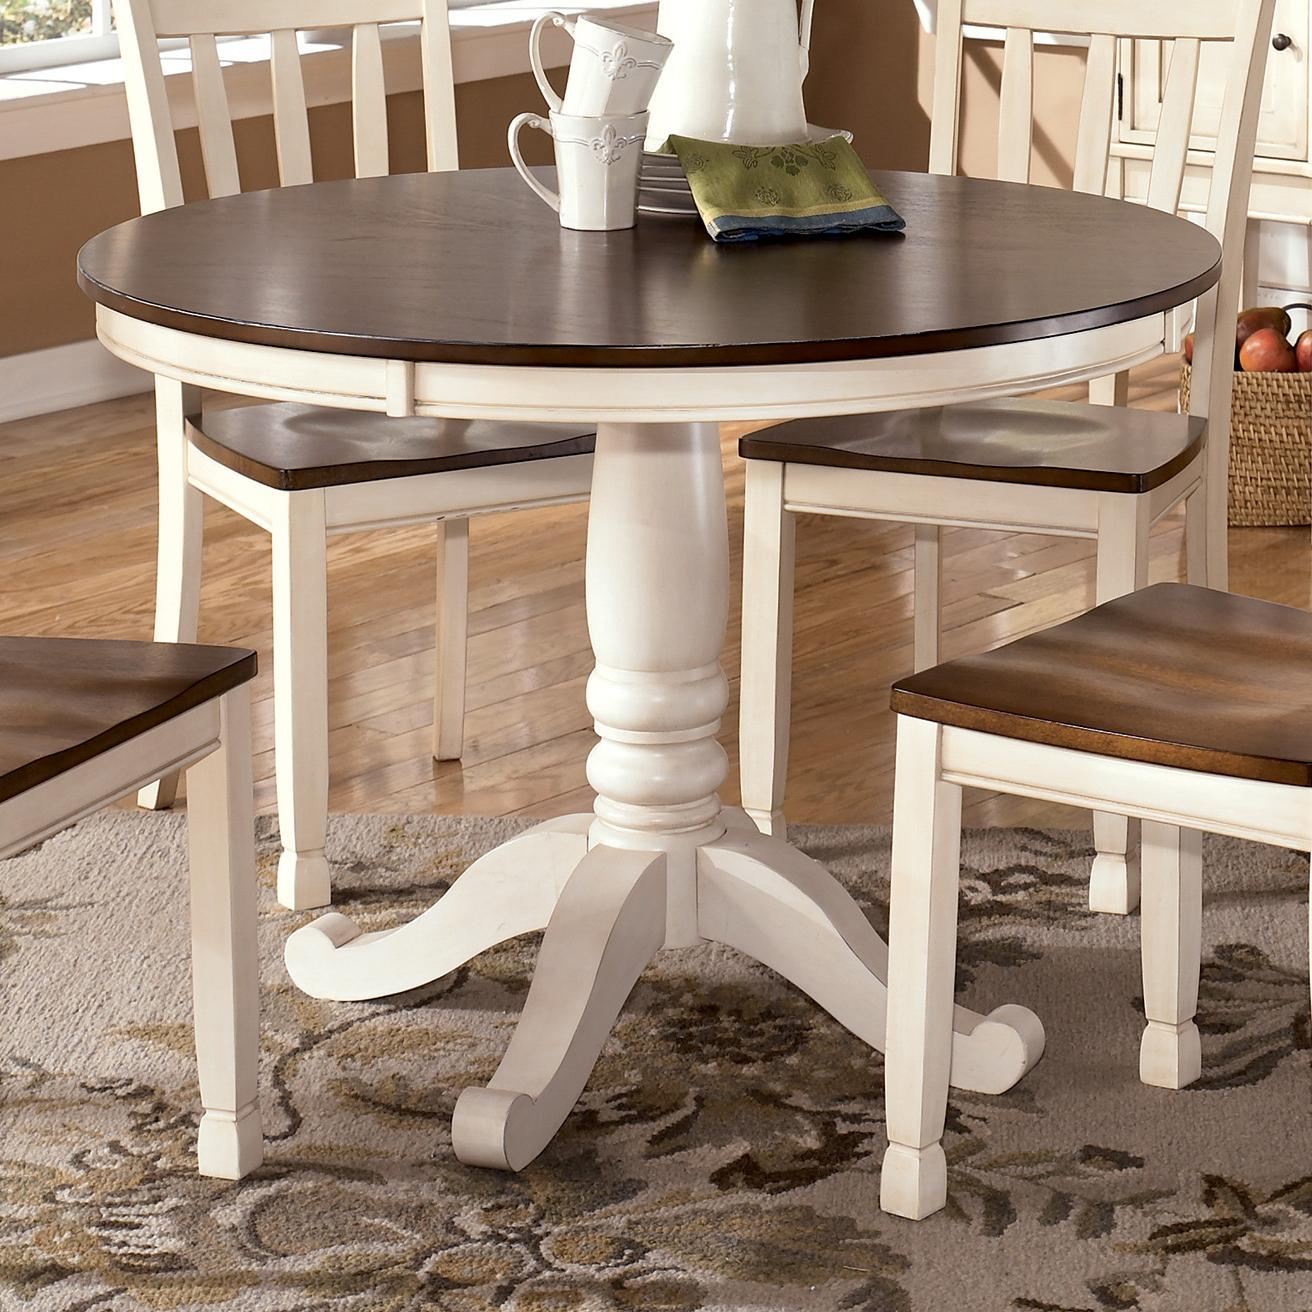 Signature design by ashley whitesburg two tone round table for Round table design